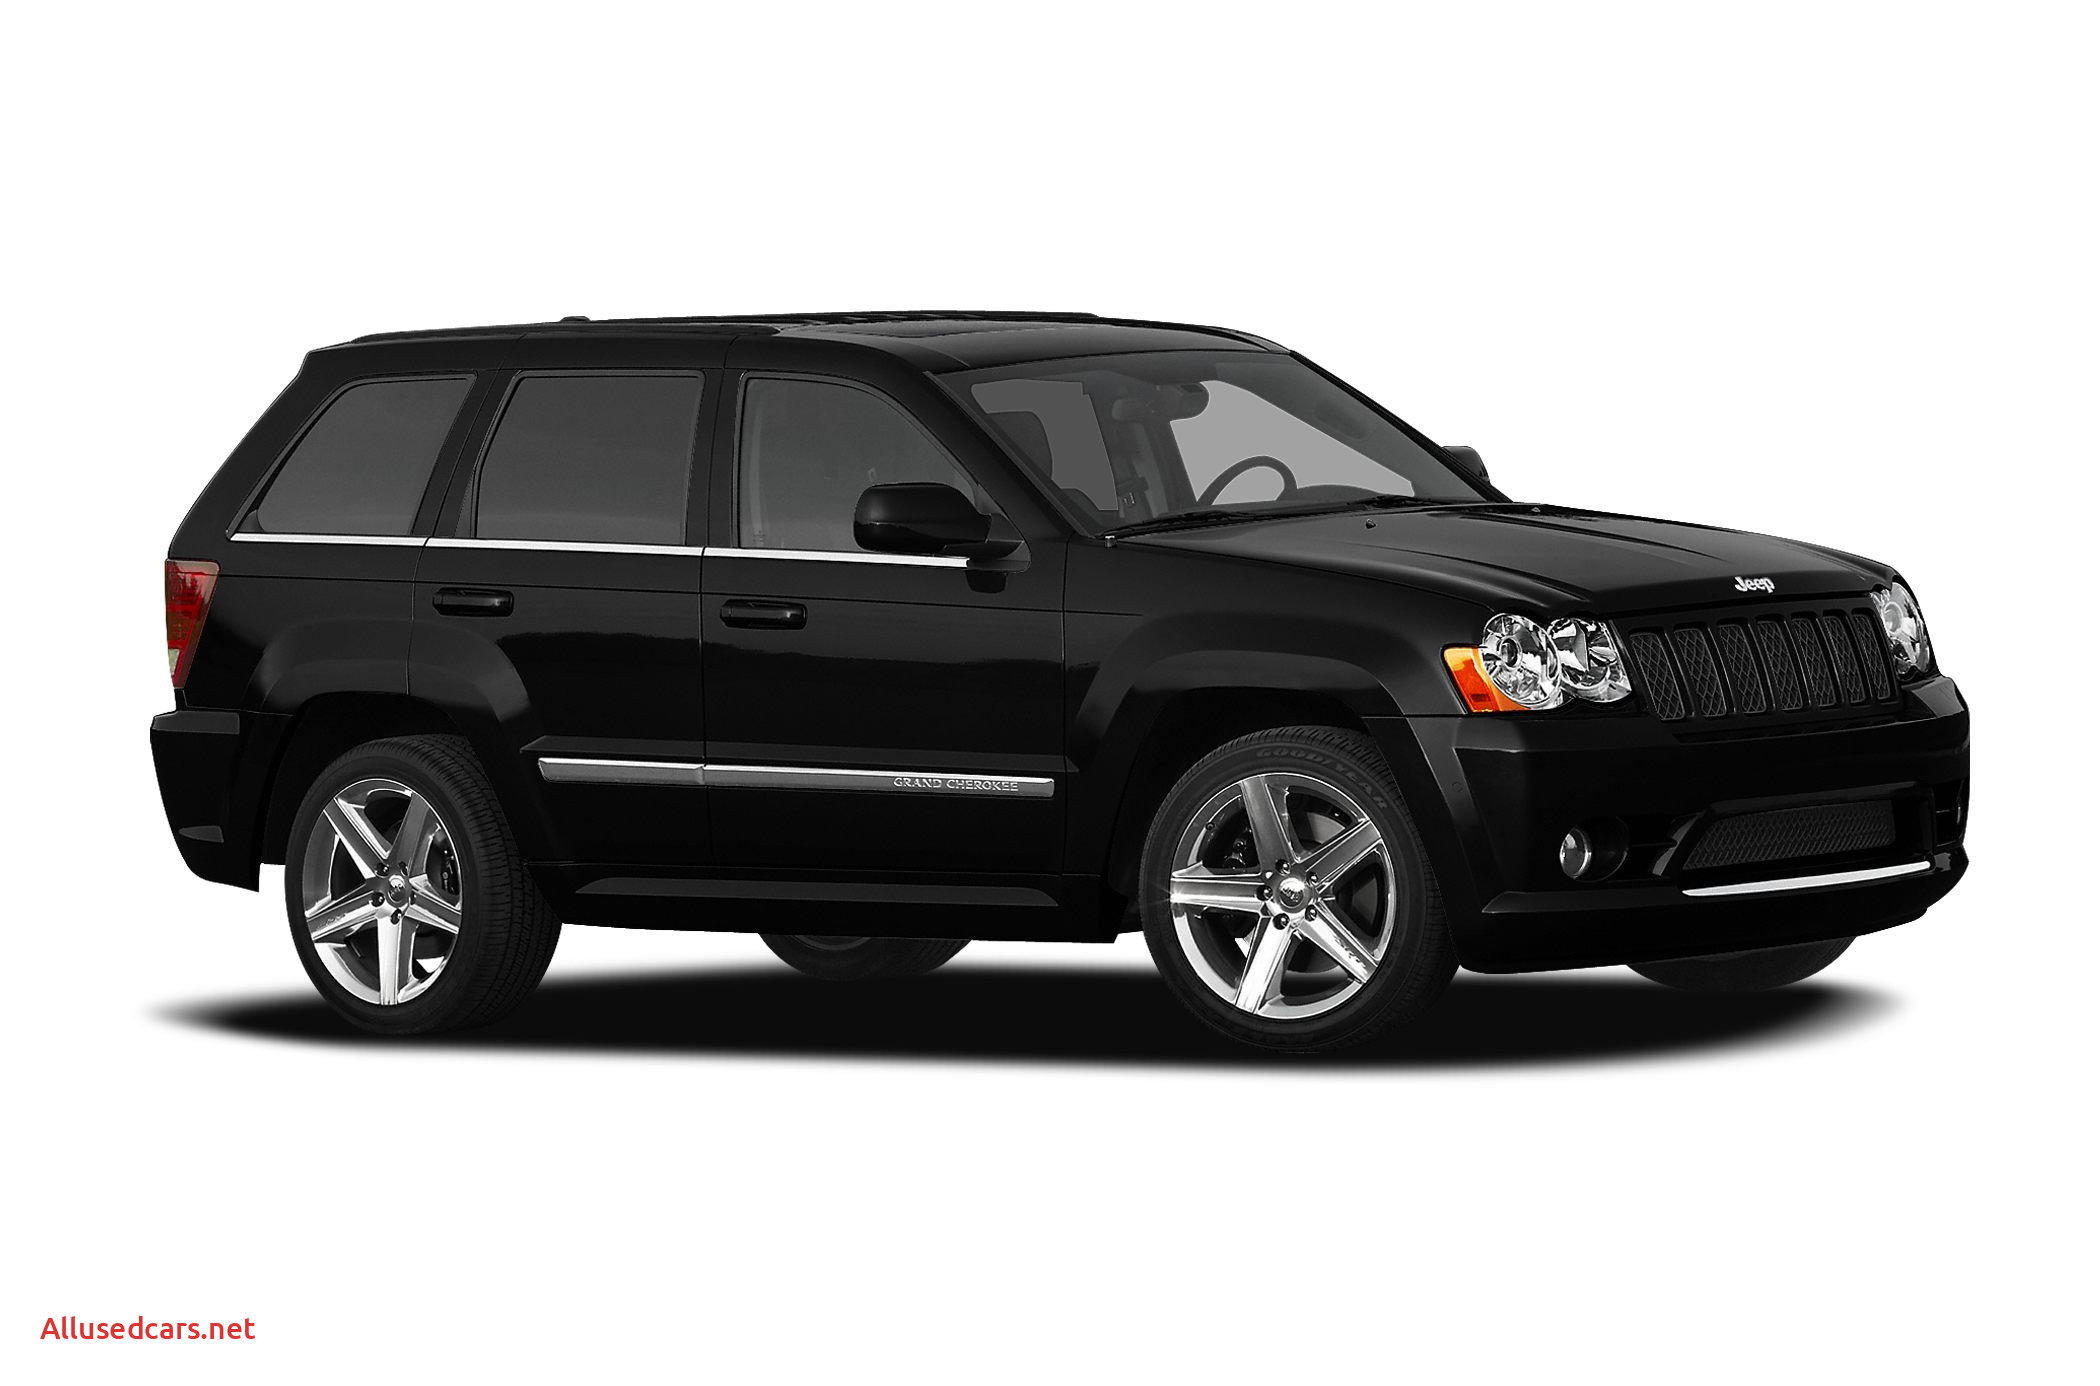 Jeep Grand Cherokee Srt8 Inspirational 2009 Jeep Grand Cherokee Srt8 4dr 4×4 Pricing and Options